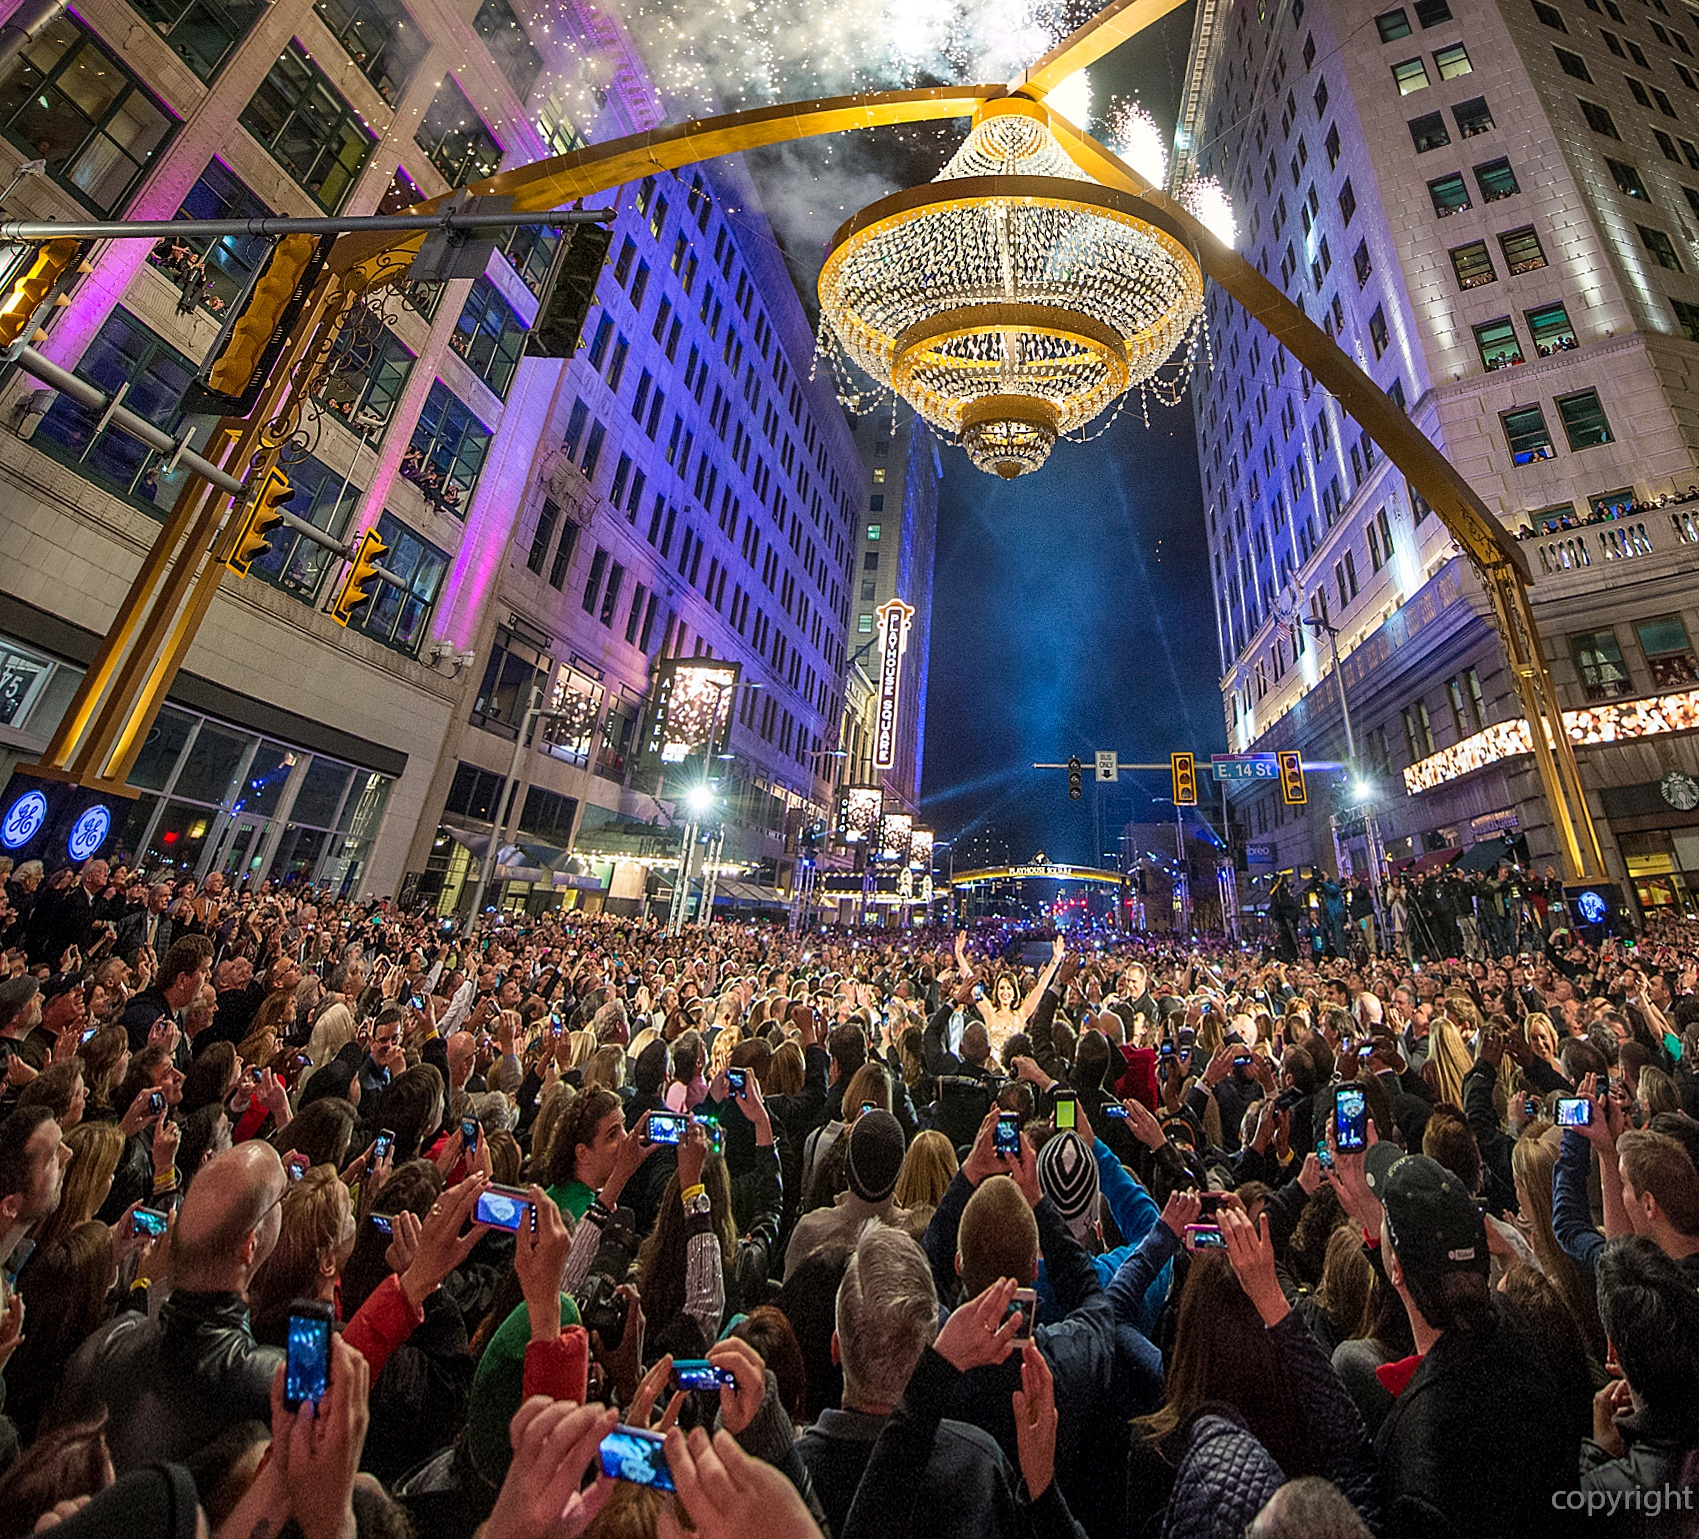 The Cleveland Foundation's social impact investing helped make Playhouse Square one of the premier performing arts centers in the United States. Photo credit: The Cleveland Foundation